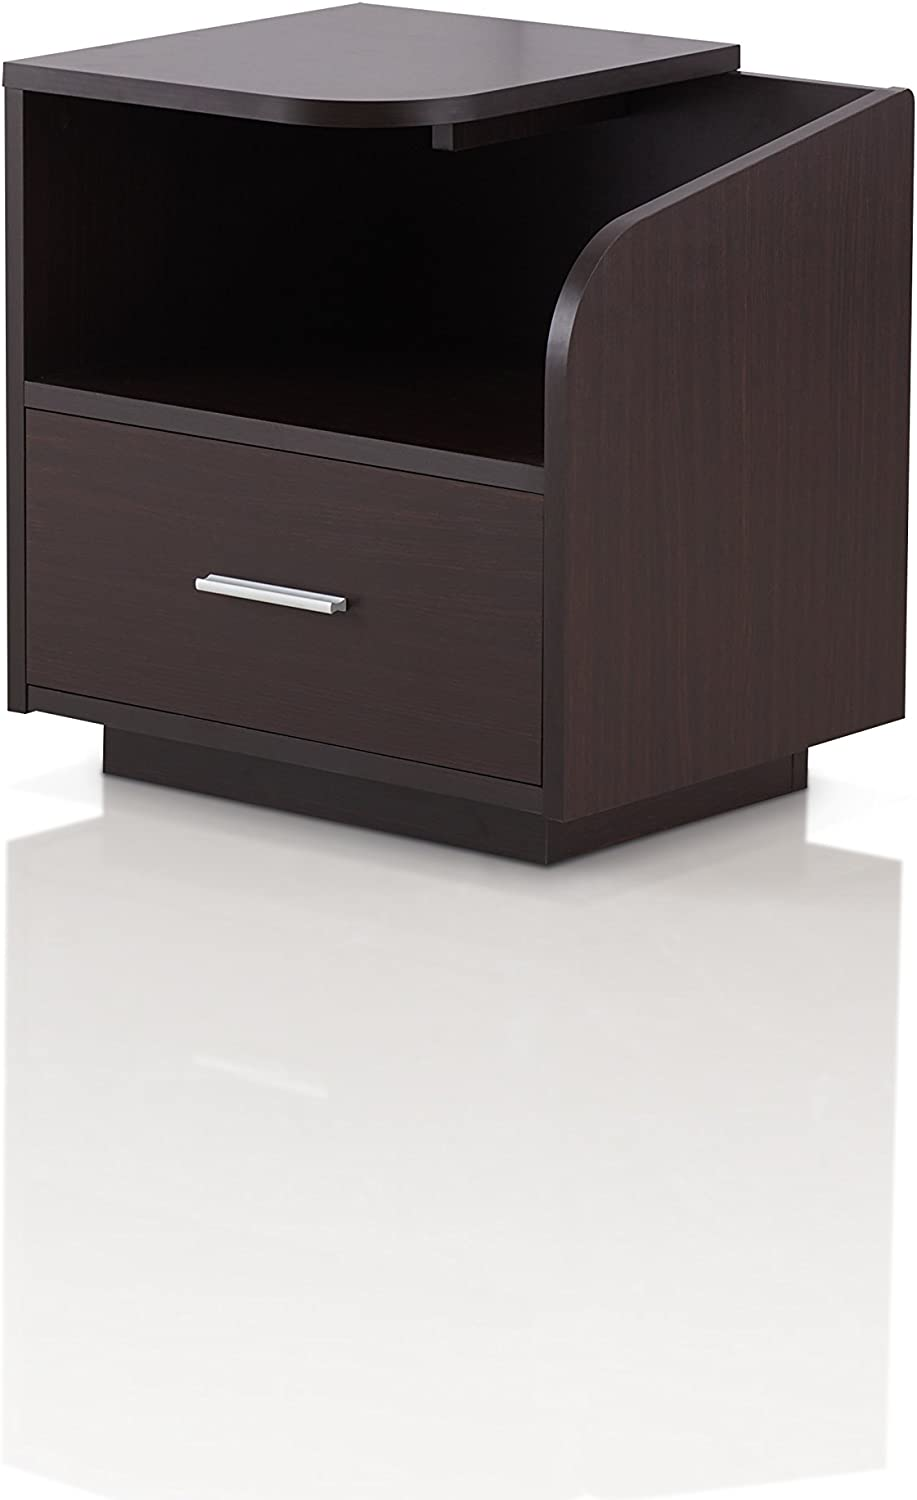 Furniture of America Chard Contemporary Wood End Table with 1-Drawer, Walnut